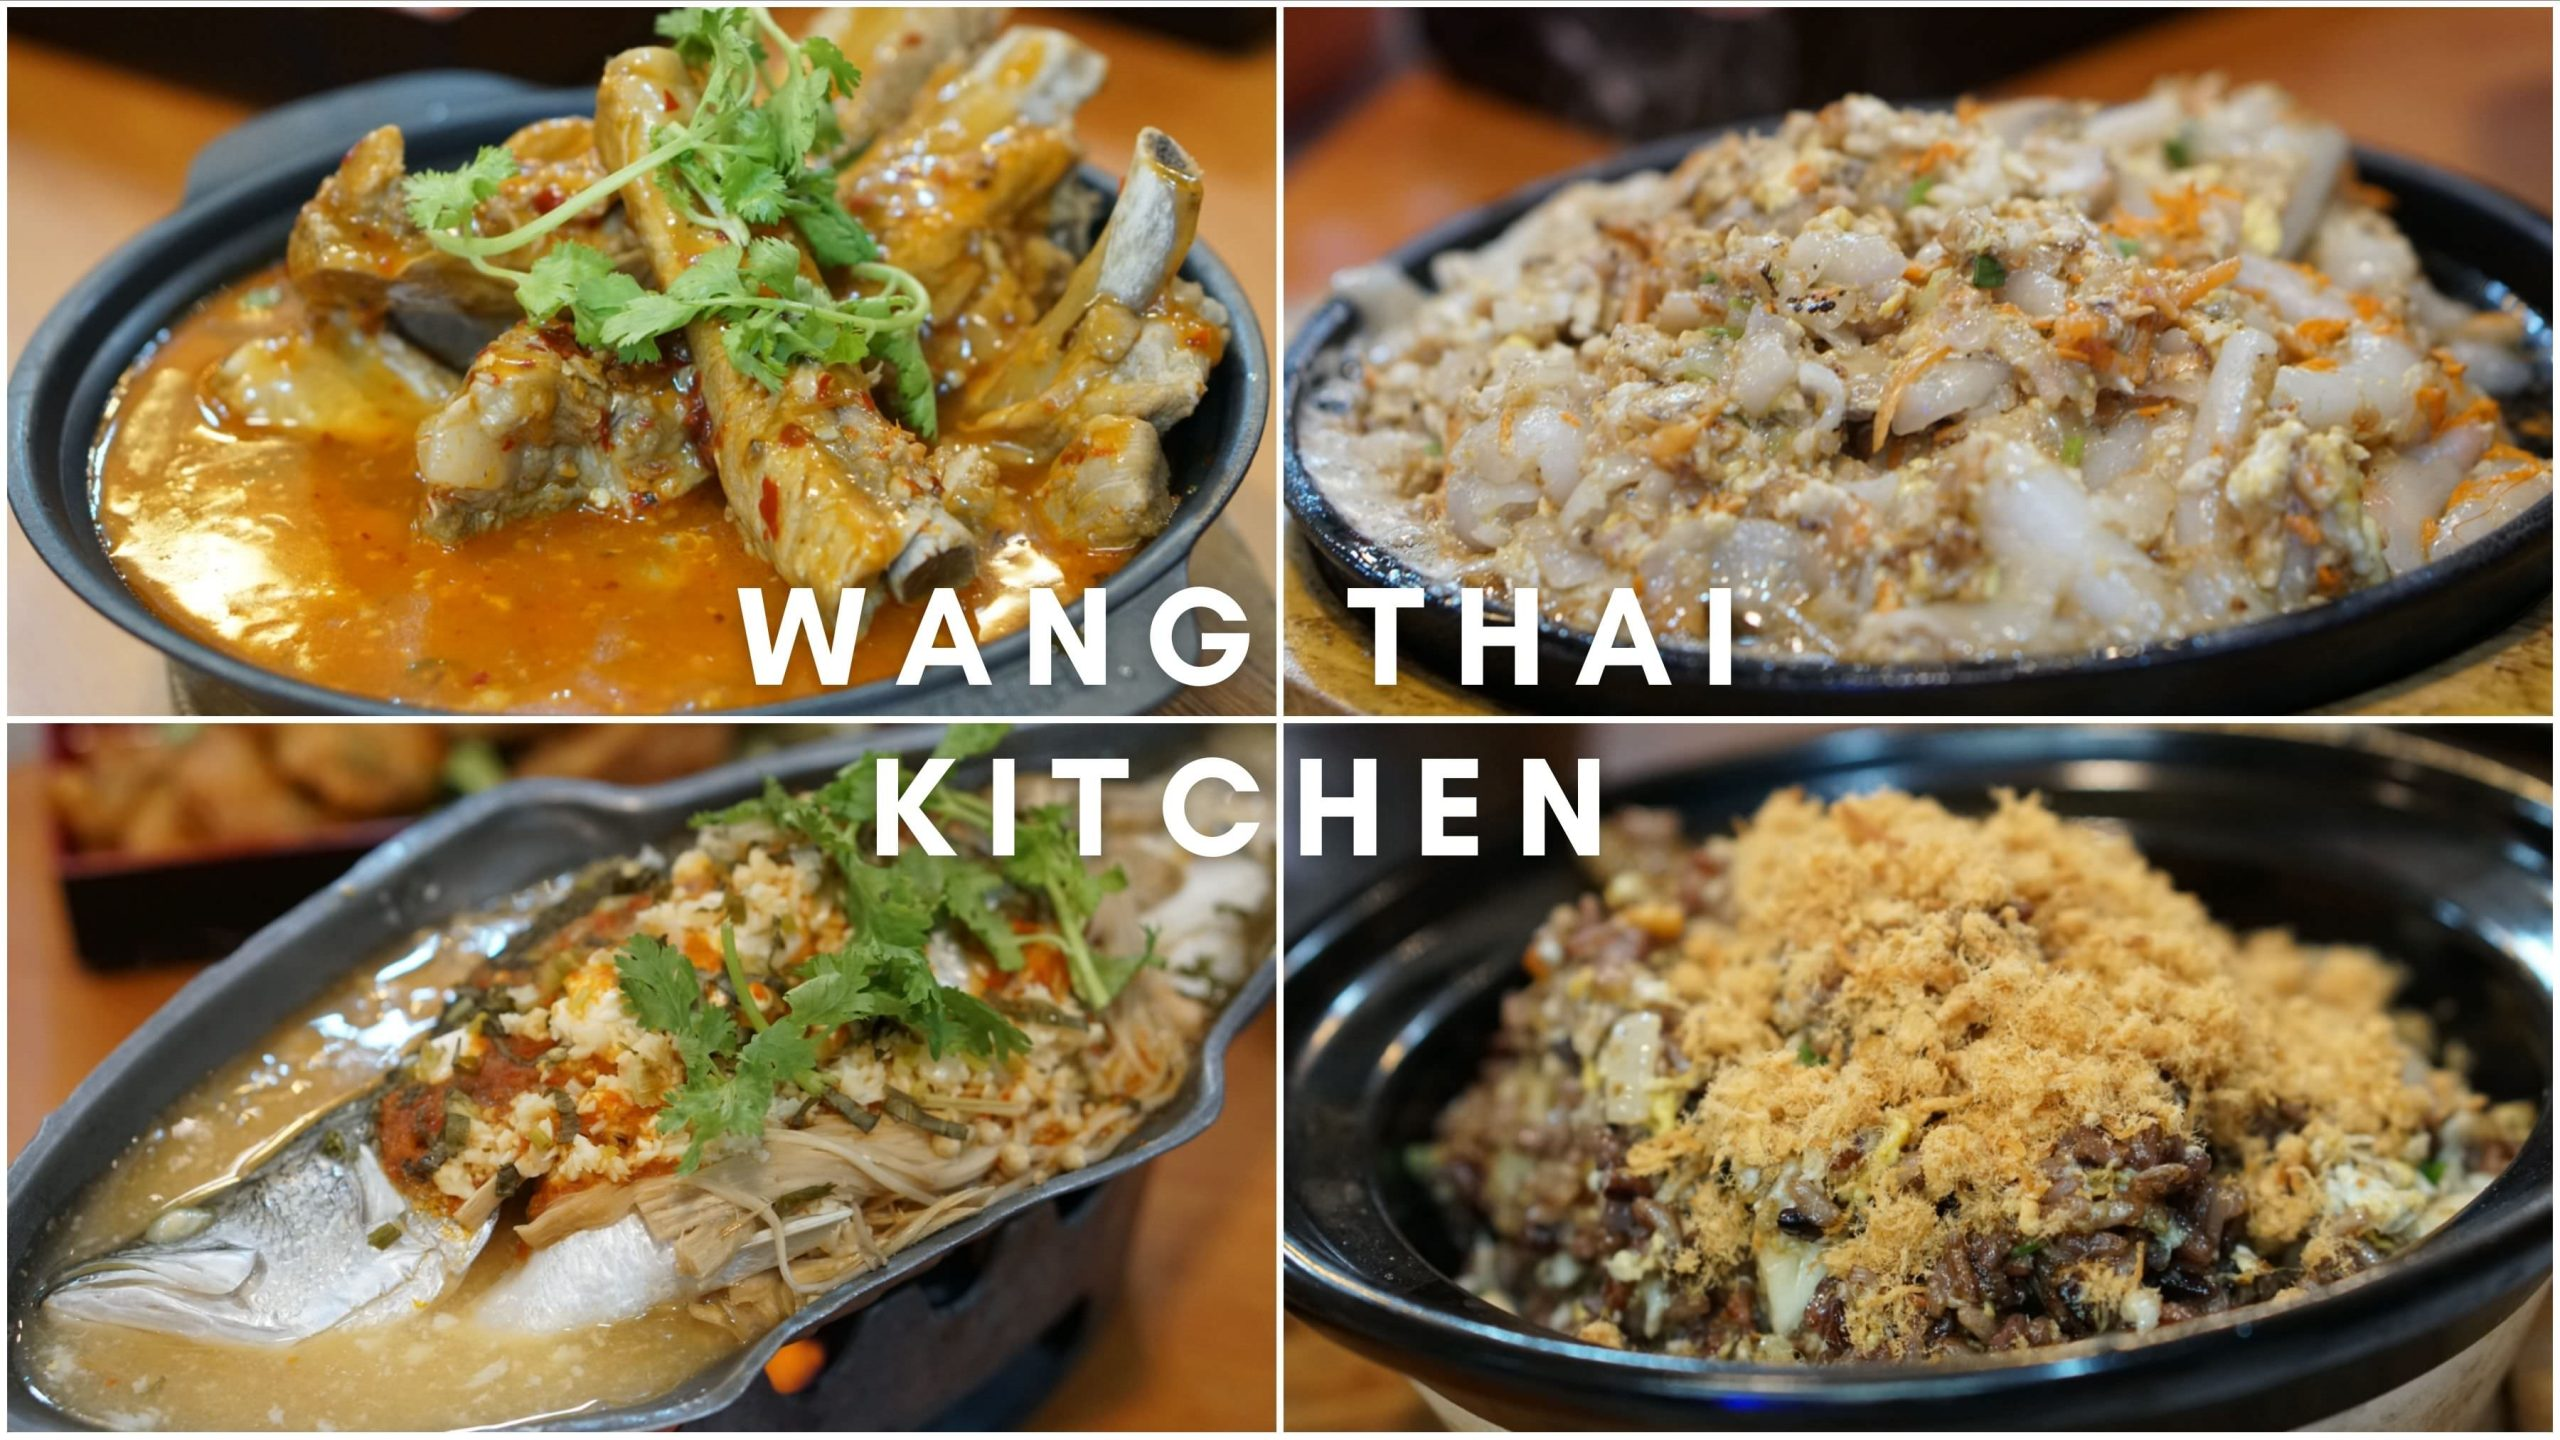 wangthaikitchen-featured